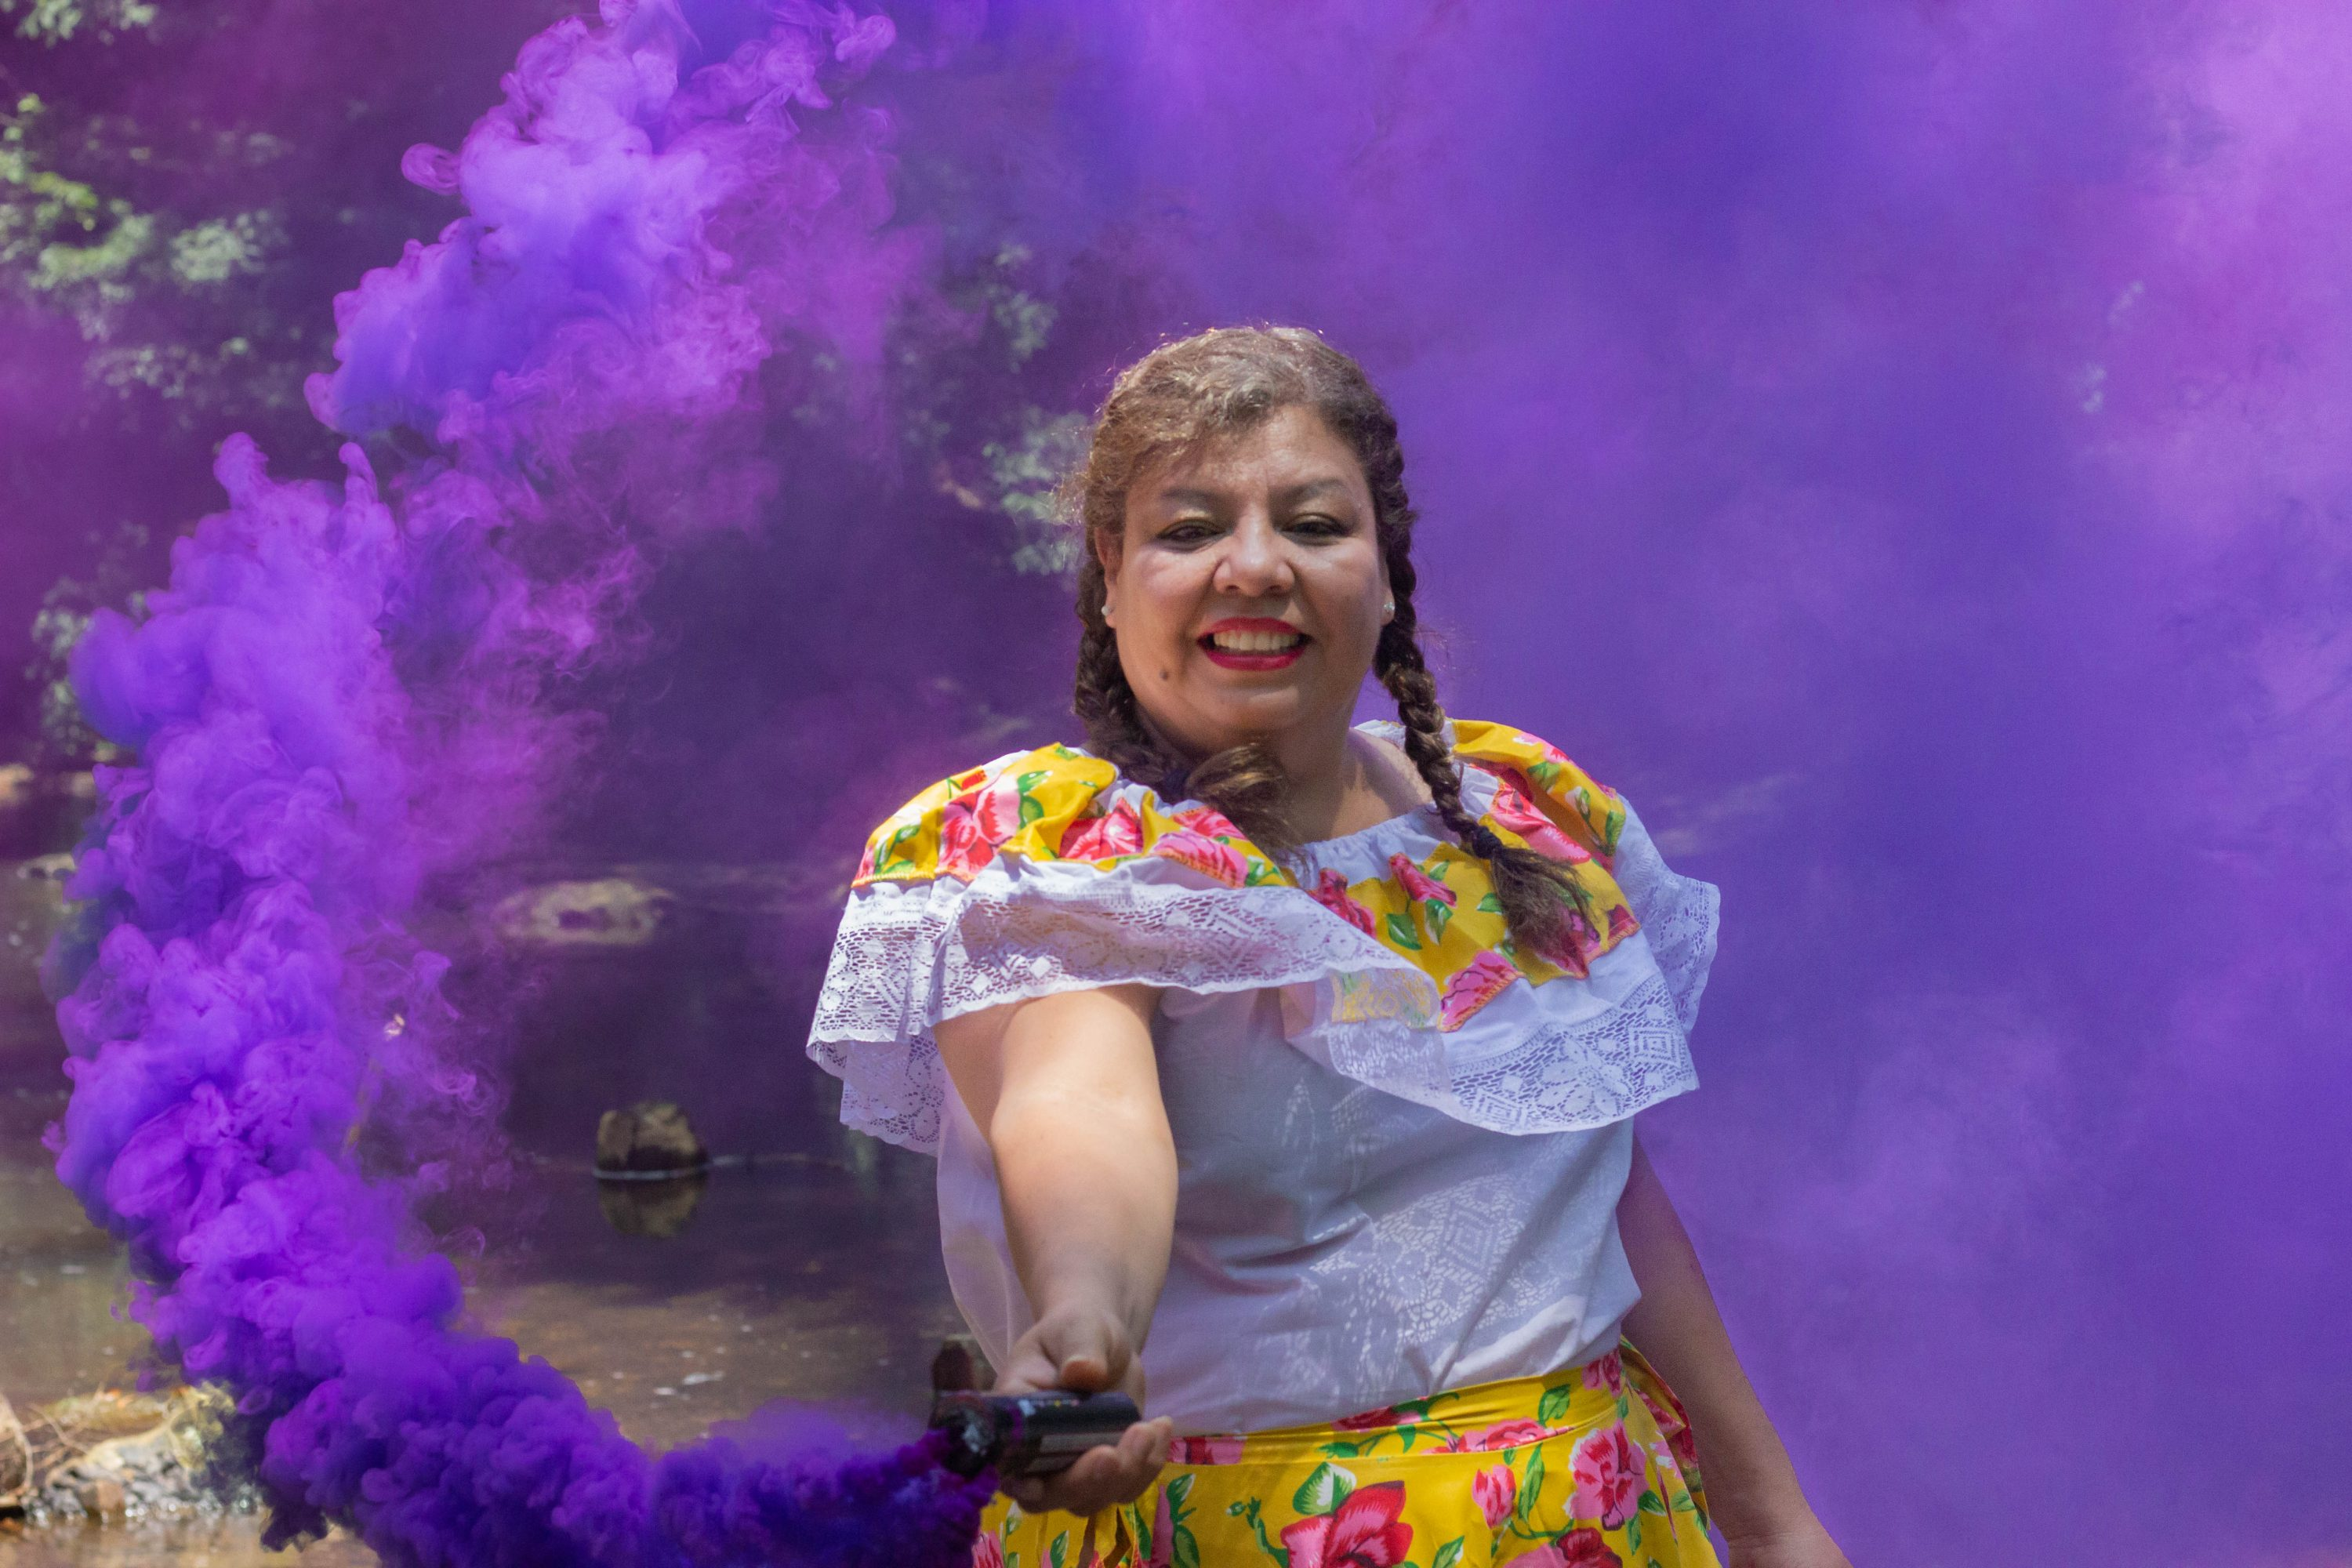 purple smoke bomb portraits